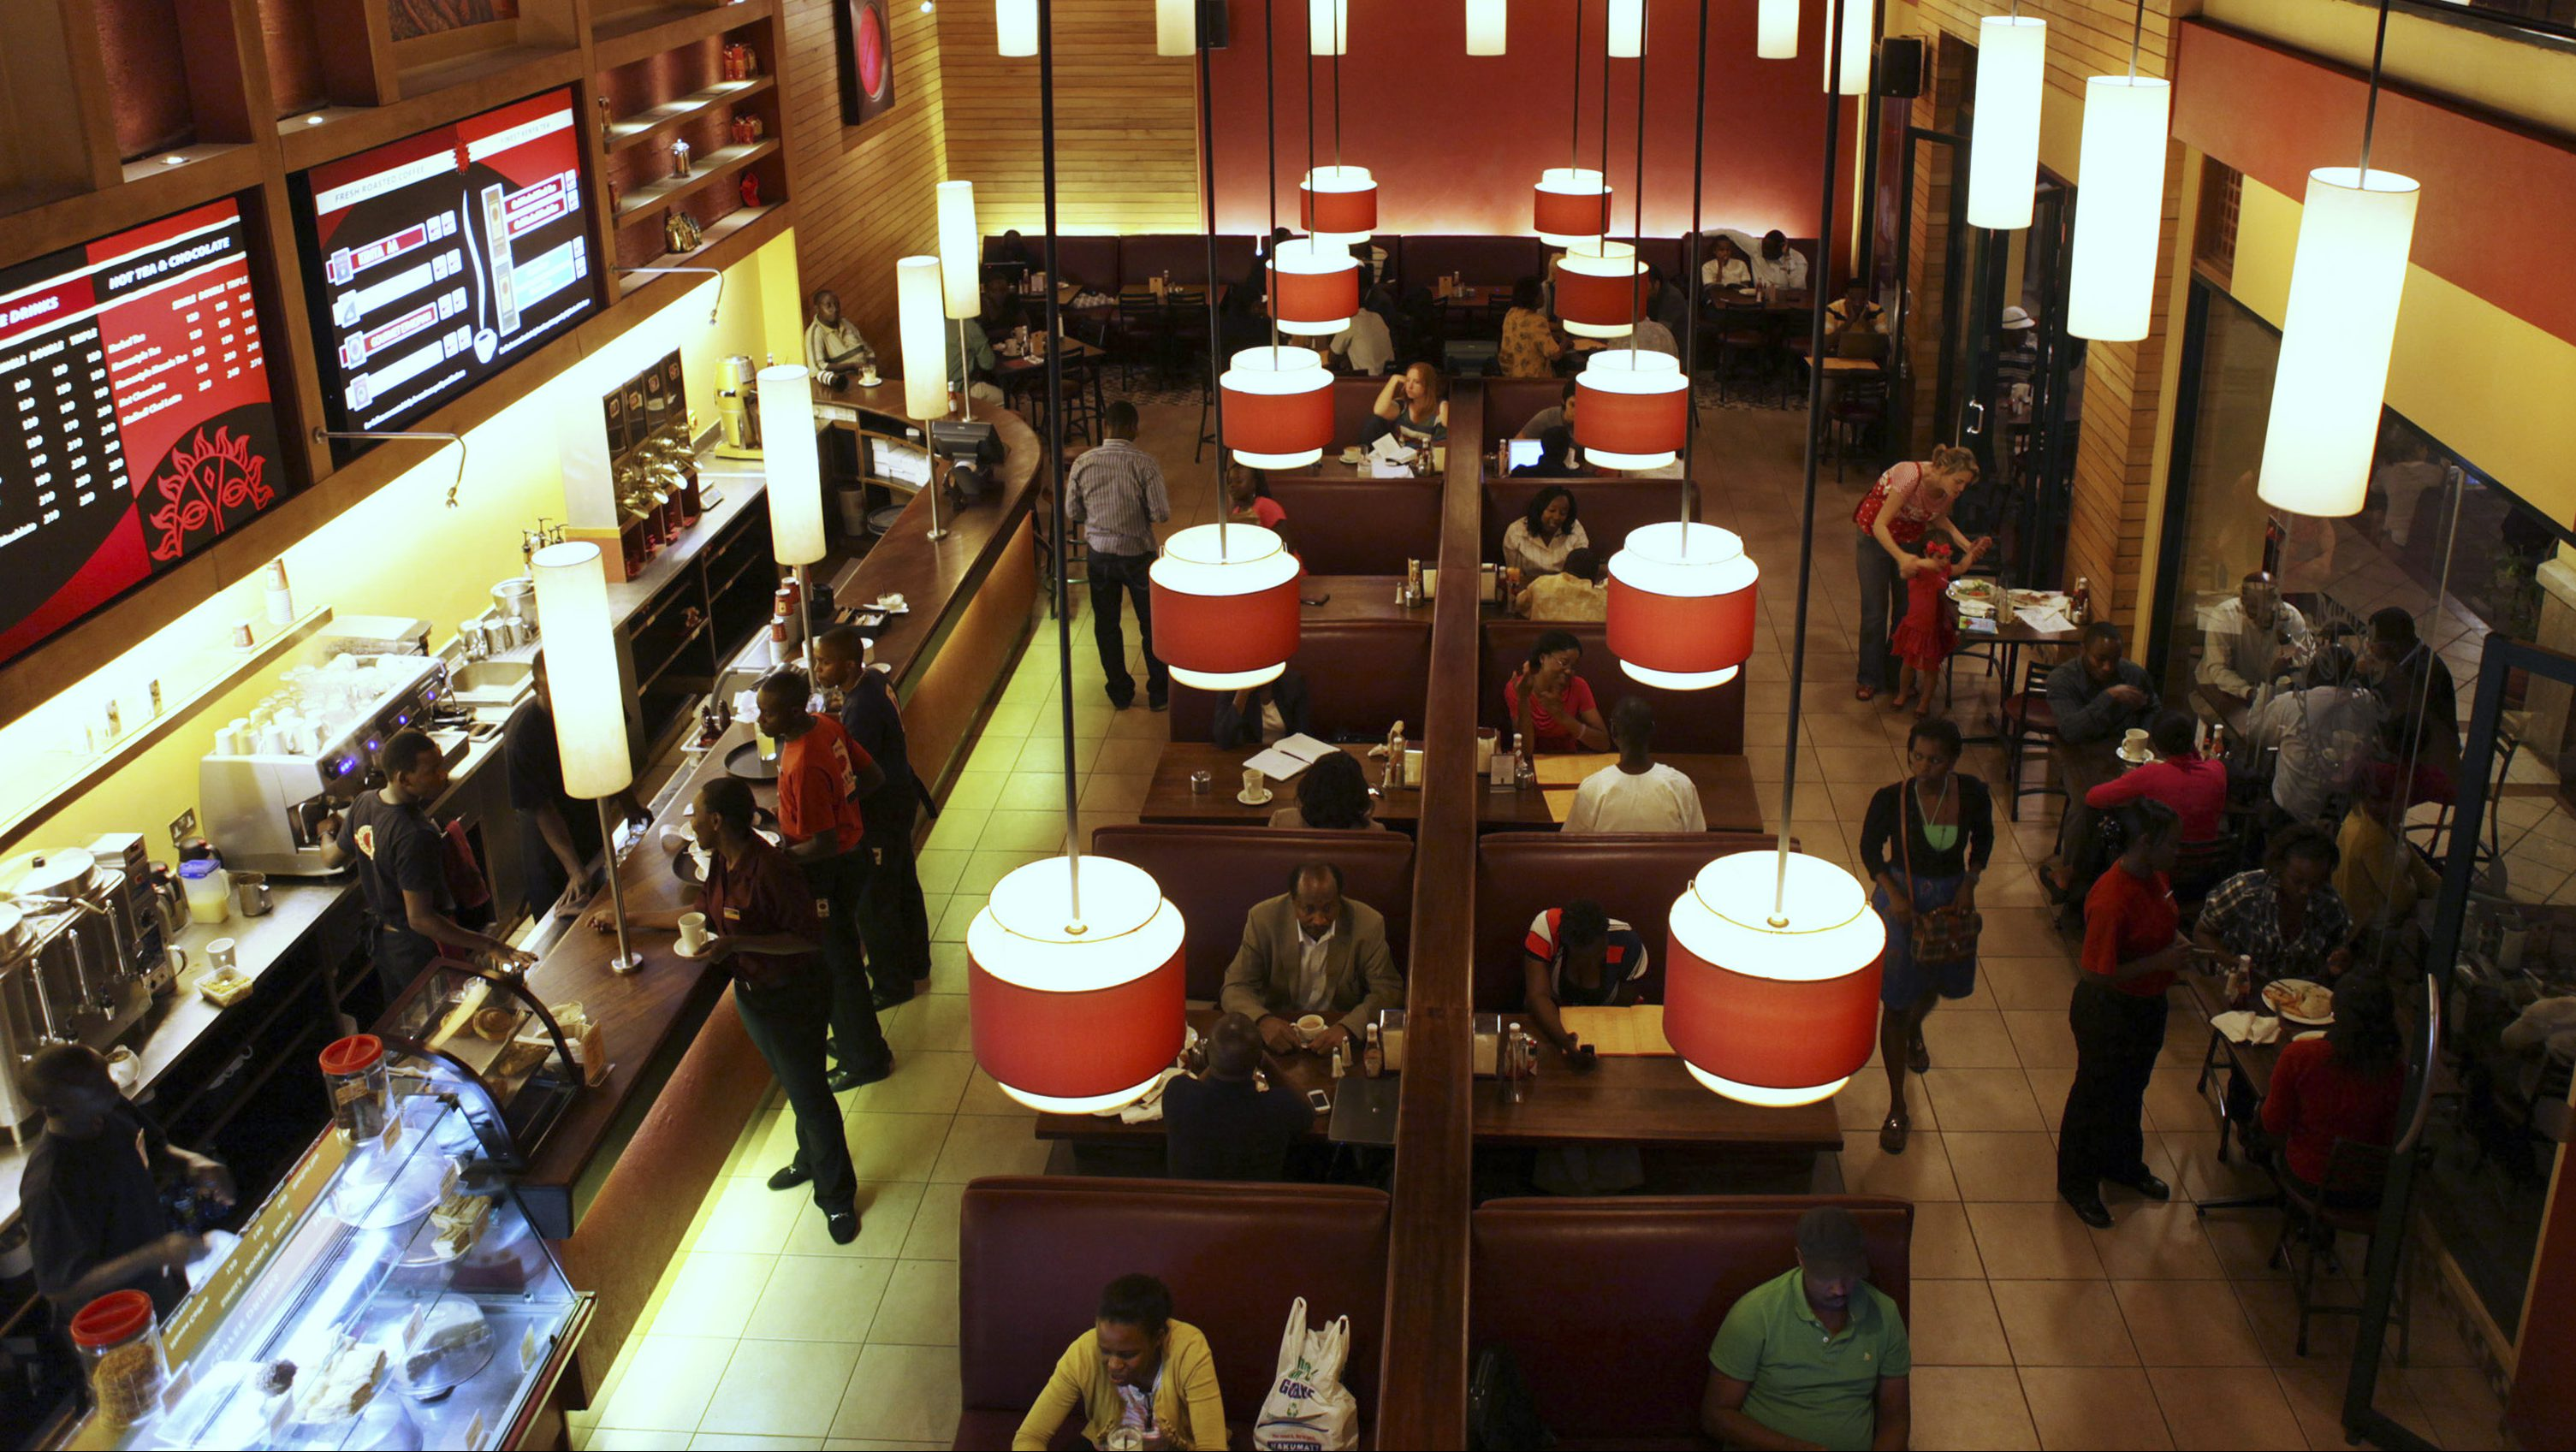 An interior view of a Nairobi Java House outlet in Nairobi January 20, 2012. Kenya's rich and new middle classes have a growing taste for coffee and ice cream. That's just one sign that African states such as Kenya are changing. Even as rich countries face slowdown, sub-Saharan African economies are expected to post nearly 6 percent average growth in 2012, according to the IMF. A study by the International Finance Corporation, part of the World Bank, has pointed to the potential of the continent's more than 1 billion people, millions of whom have moved out of subsistence agriculture and into urban jobs over the past decade. Picture taken January 20, 2012.   To match Insight AFRICA/SPENDERS-INFLATION